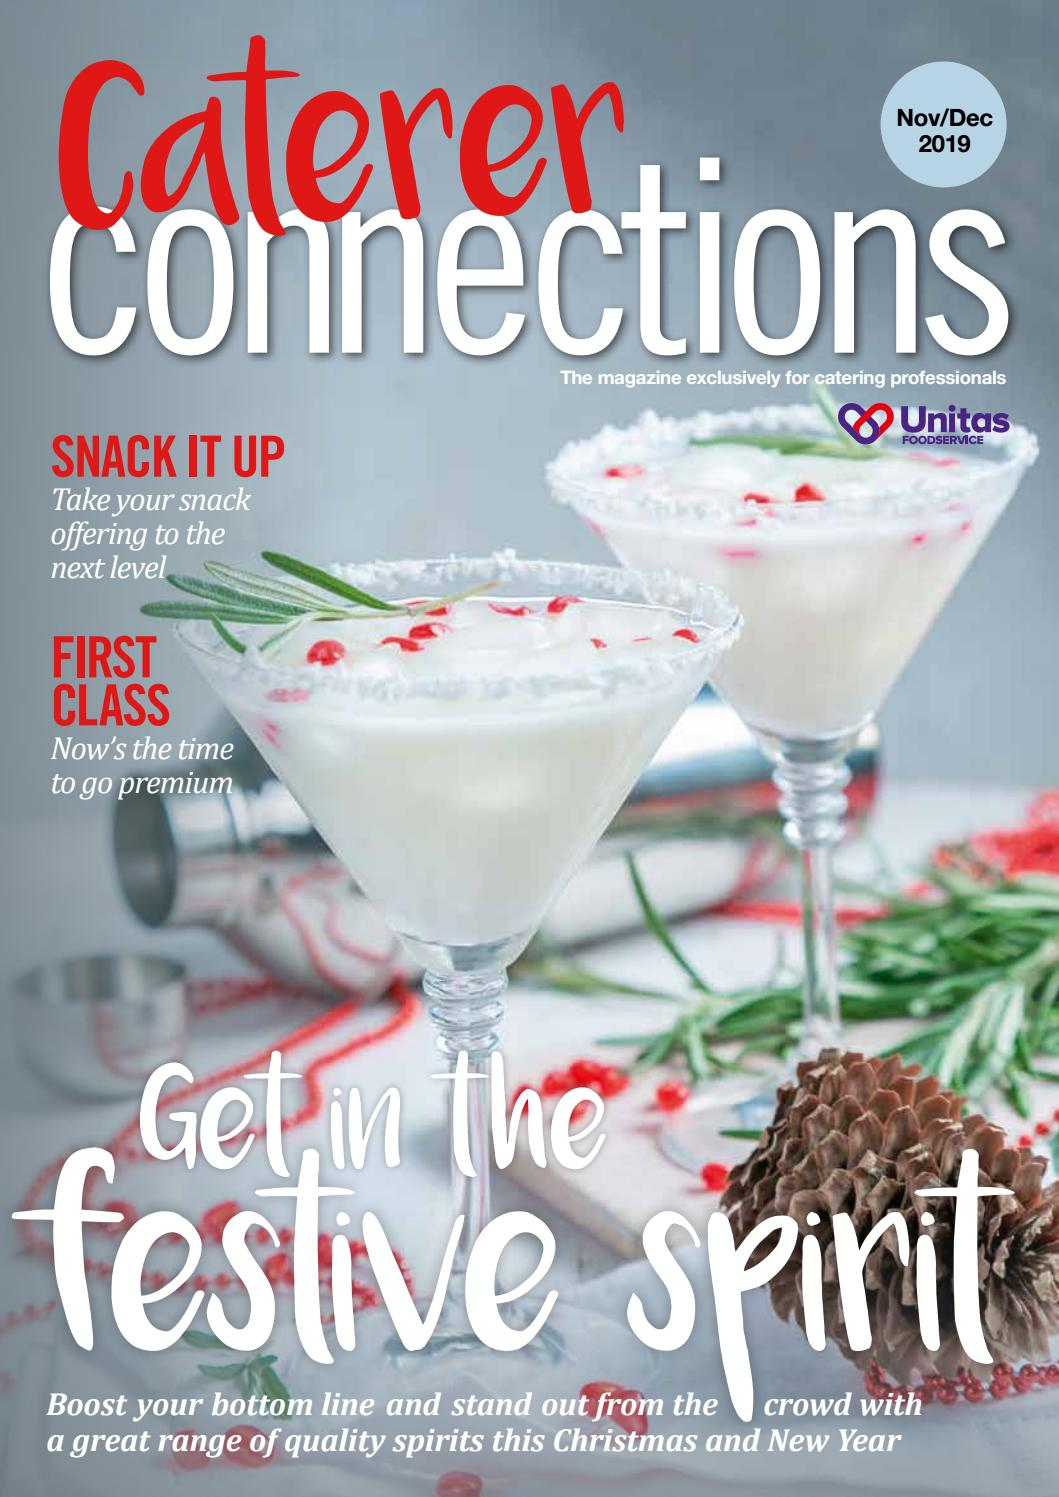 Caterer Connections Nov Dec 2019 By The Bright Media Agency